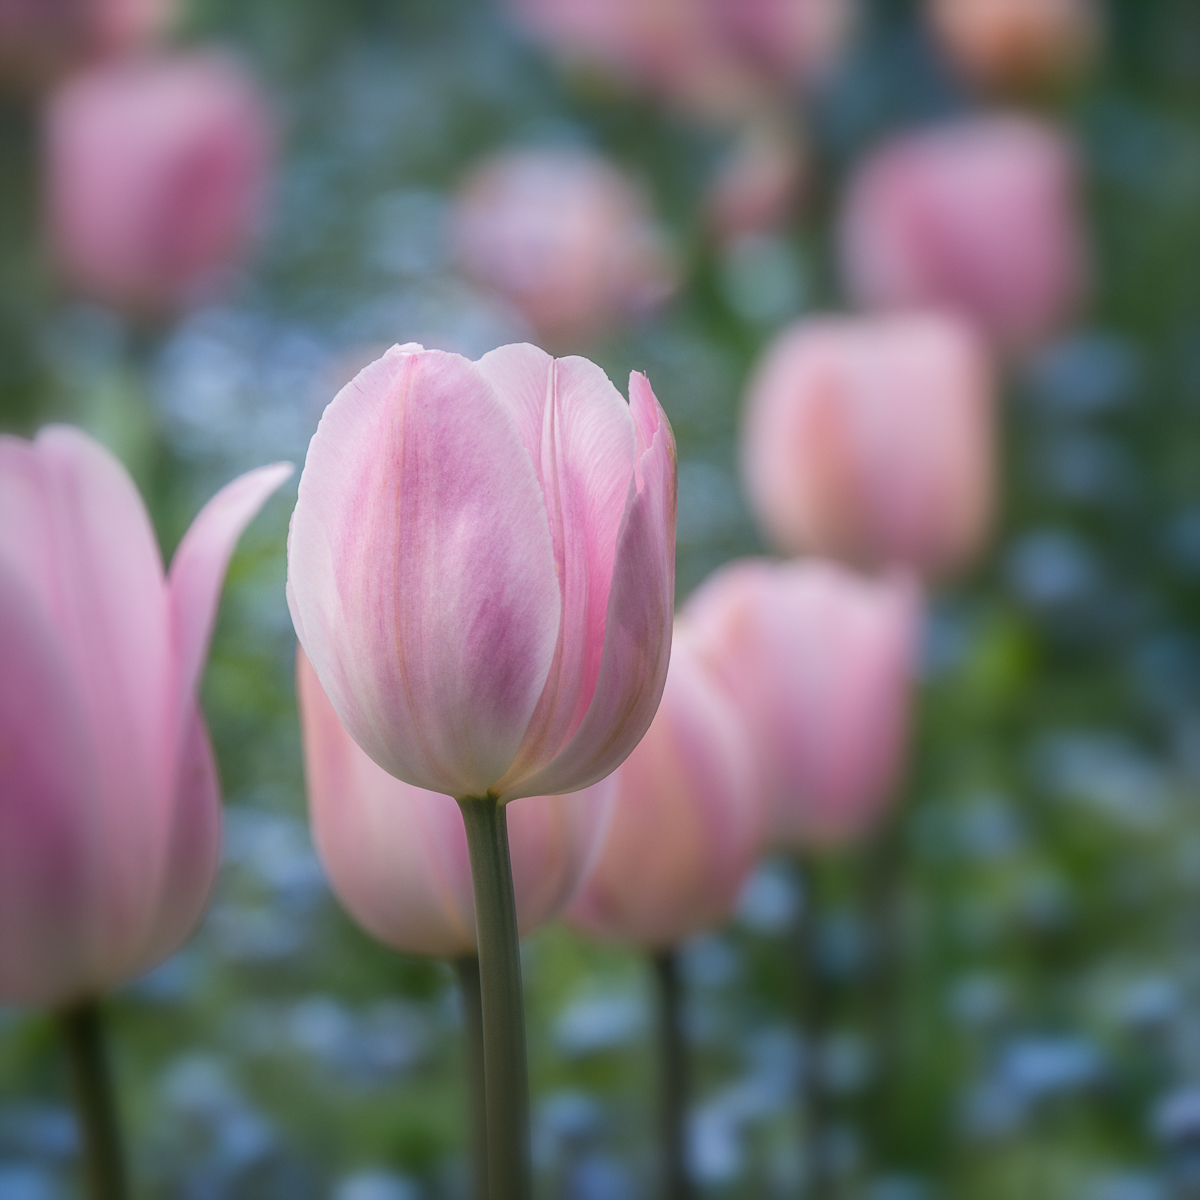 Pink Tulips (large view)